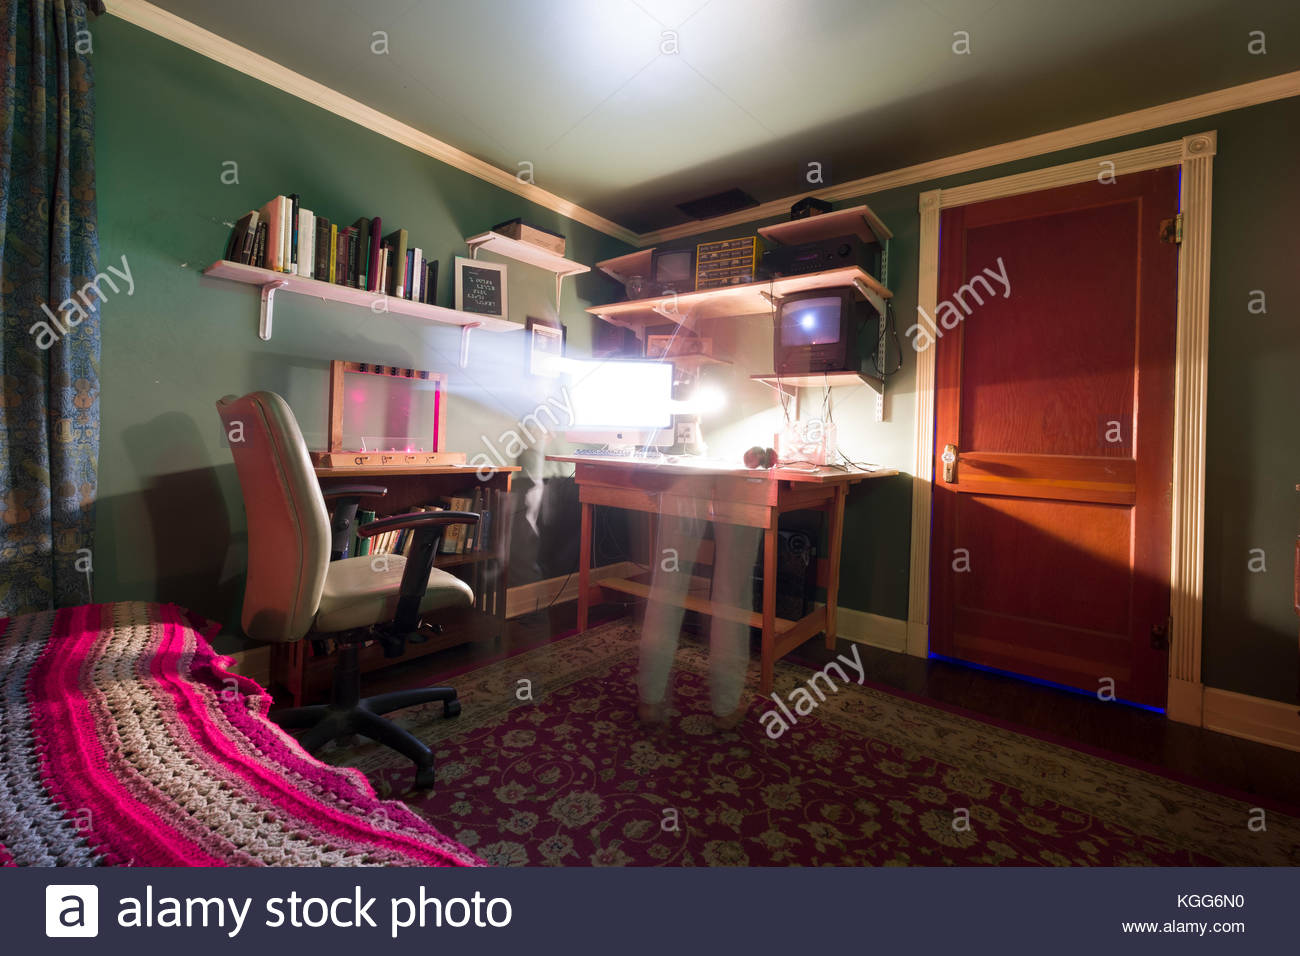 Bedroom Inside The House Of Eternal Return At Meow Wolf Santa Fe Stock Photo Alamy